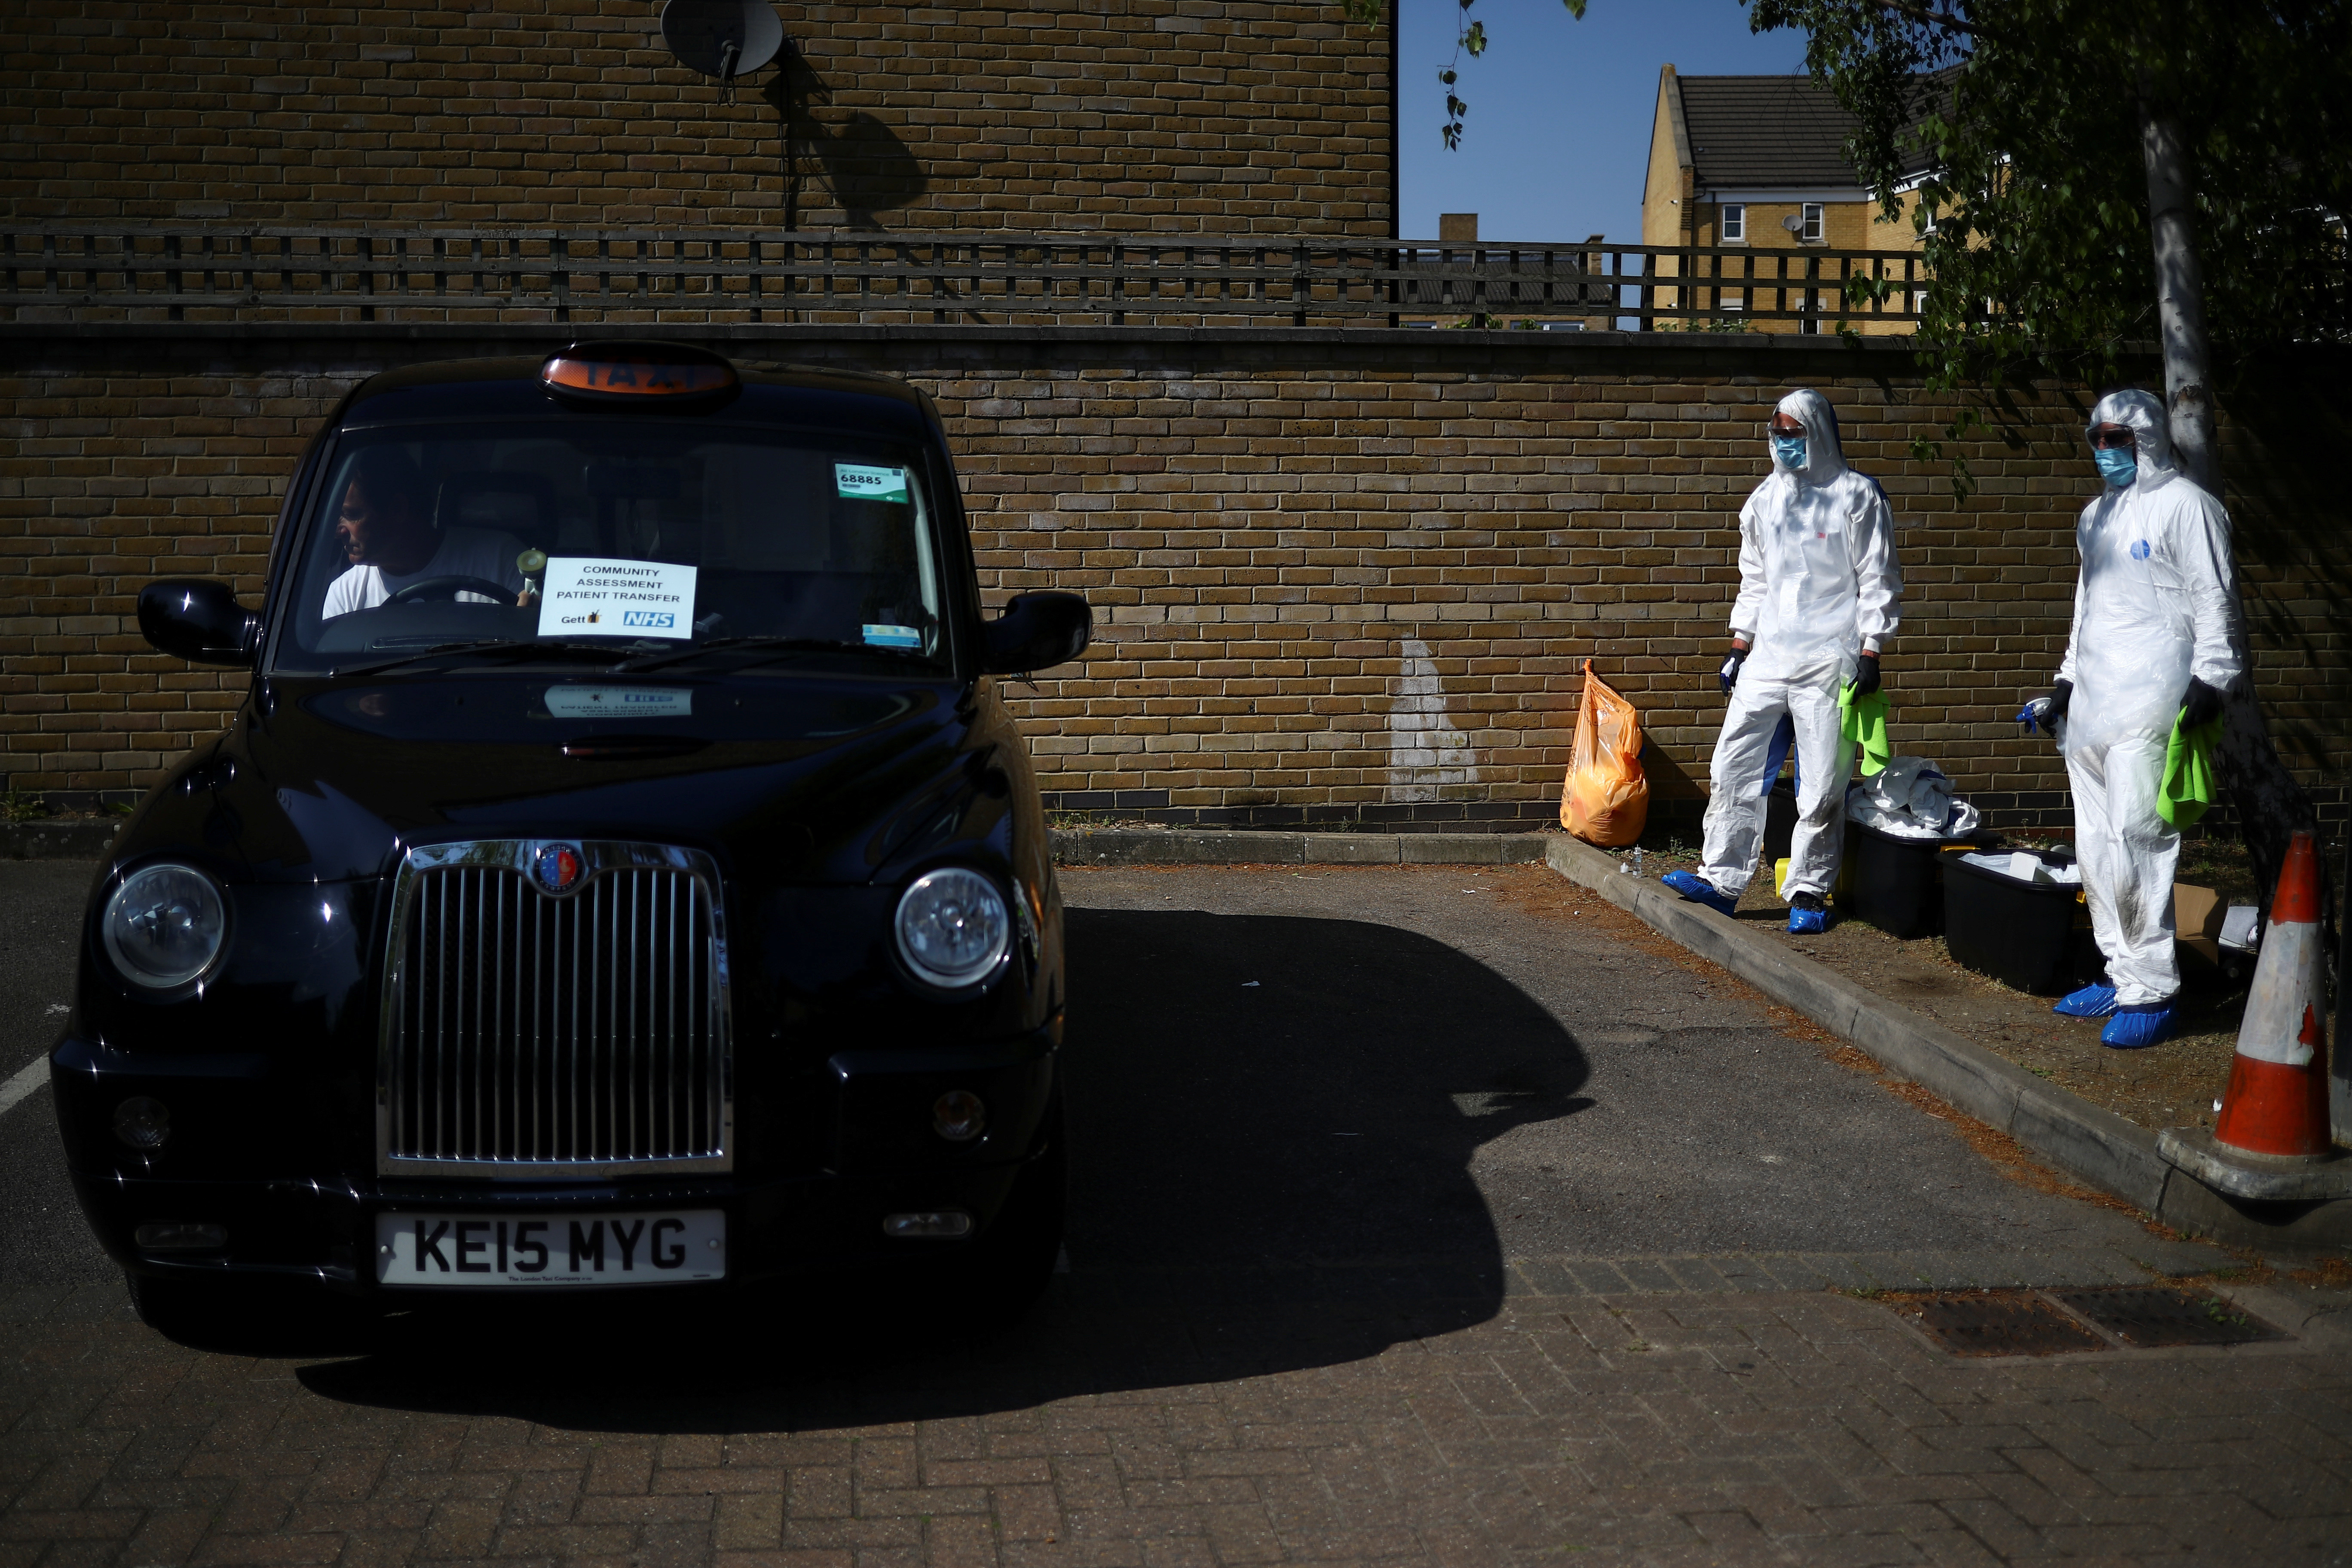 Workers from cleaning company Dropless wait to sanitise a London Black Cab as part of a service between taxi platform Gett and the NHS in south east London to ensure patients with COVID-19 symptoms can get to a local GP without using public transport as the spread of the coronavirus disease (COVID-19) continues, in London, Britain, April 23, 2020. REUTERS/Hannah Mckay - RC2FAG952KYV